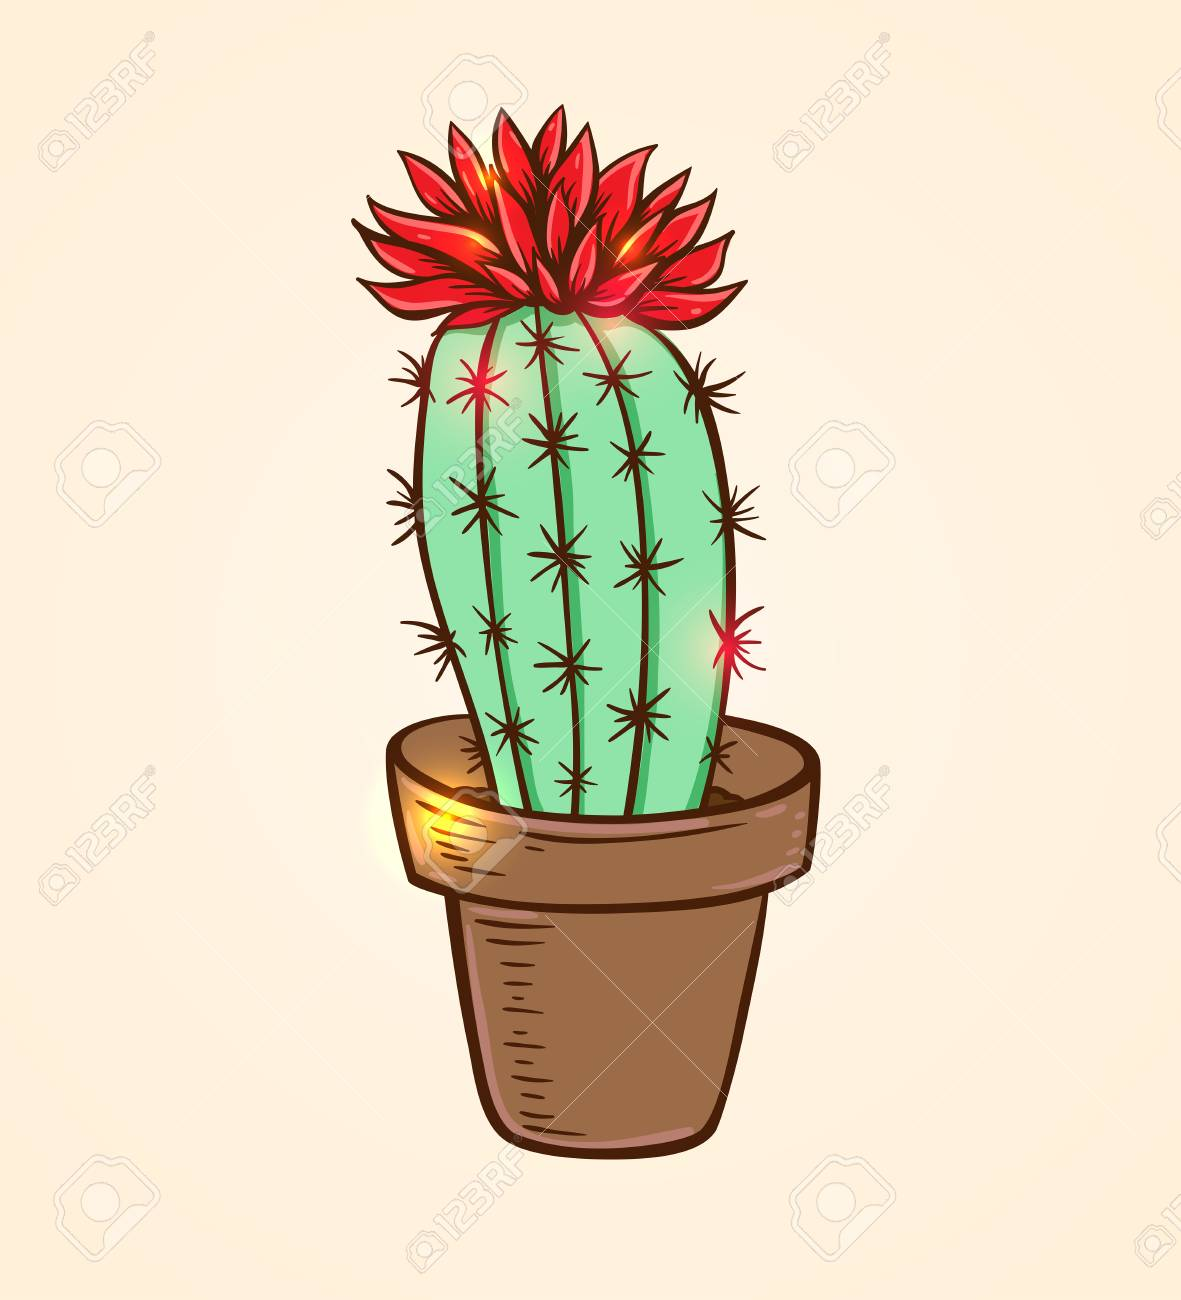 Blooming red cactus in a flowerpot hand drawn vector illustration stock vector 75203668